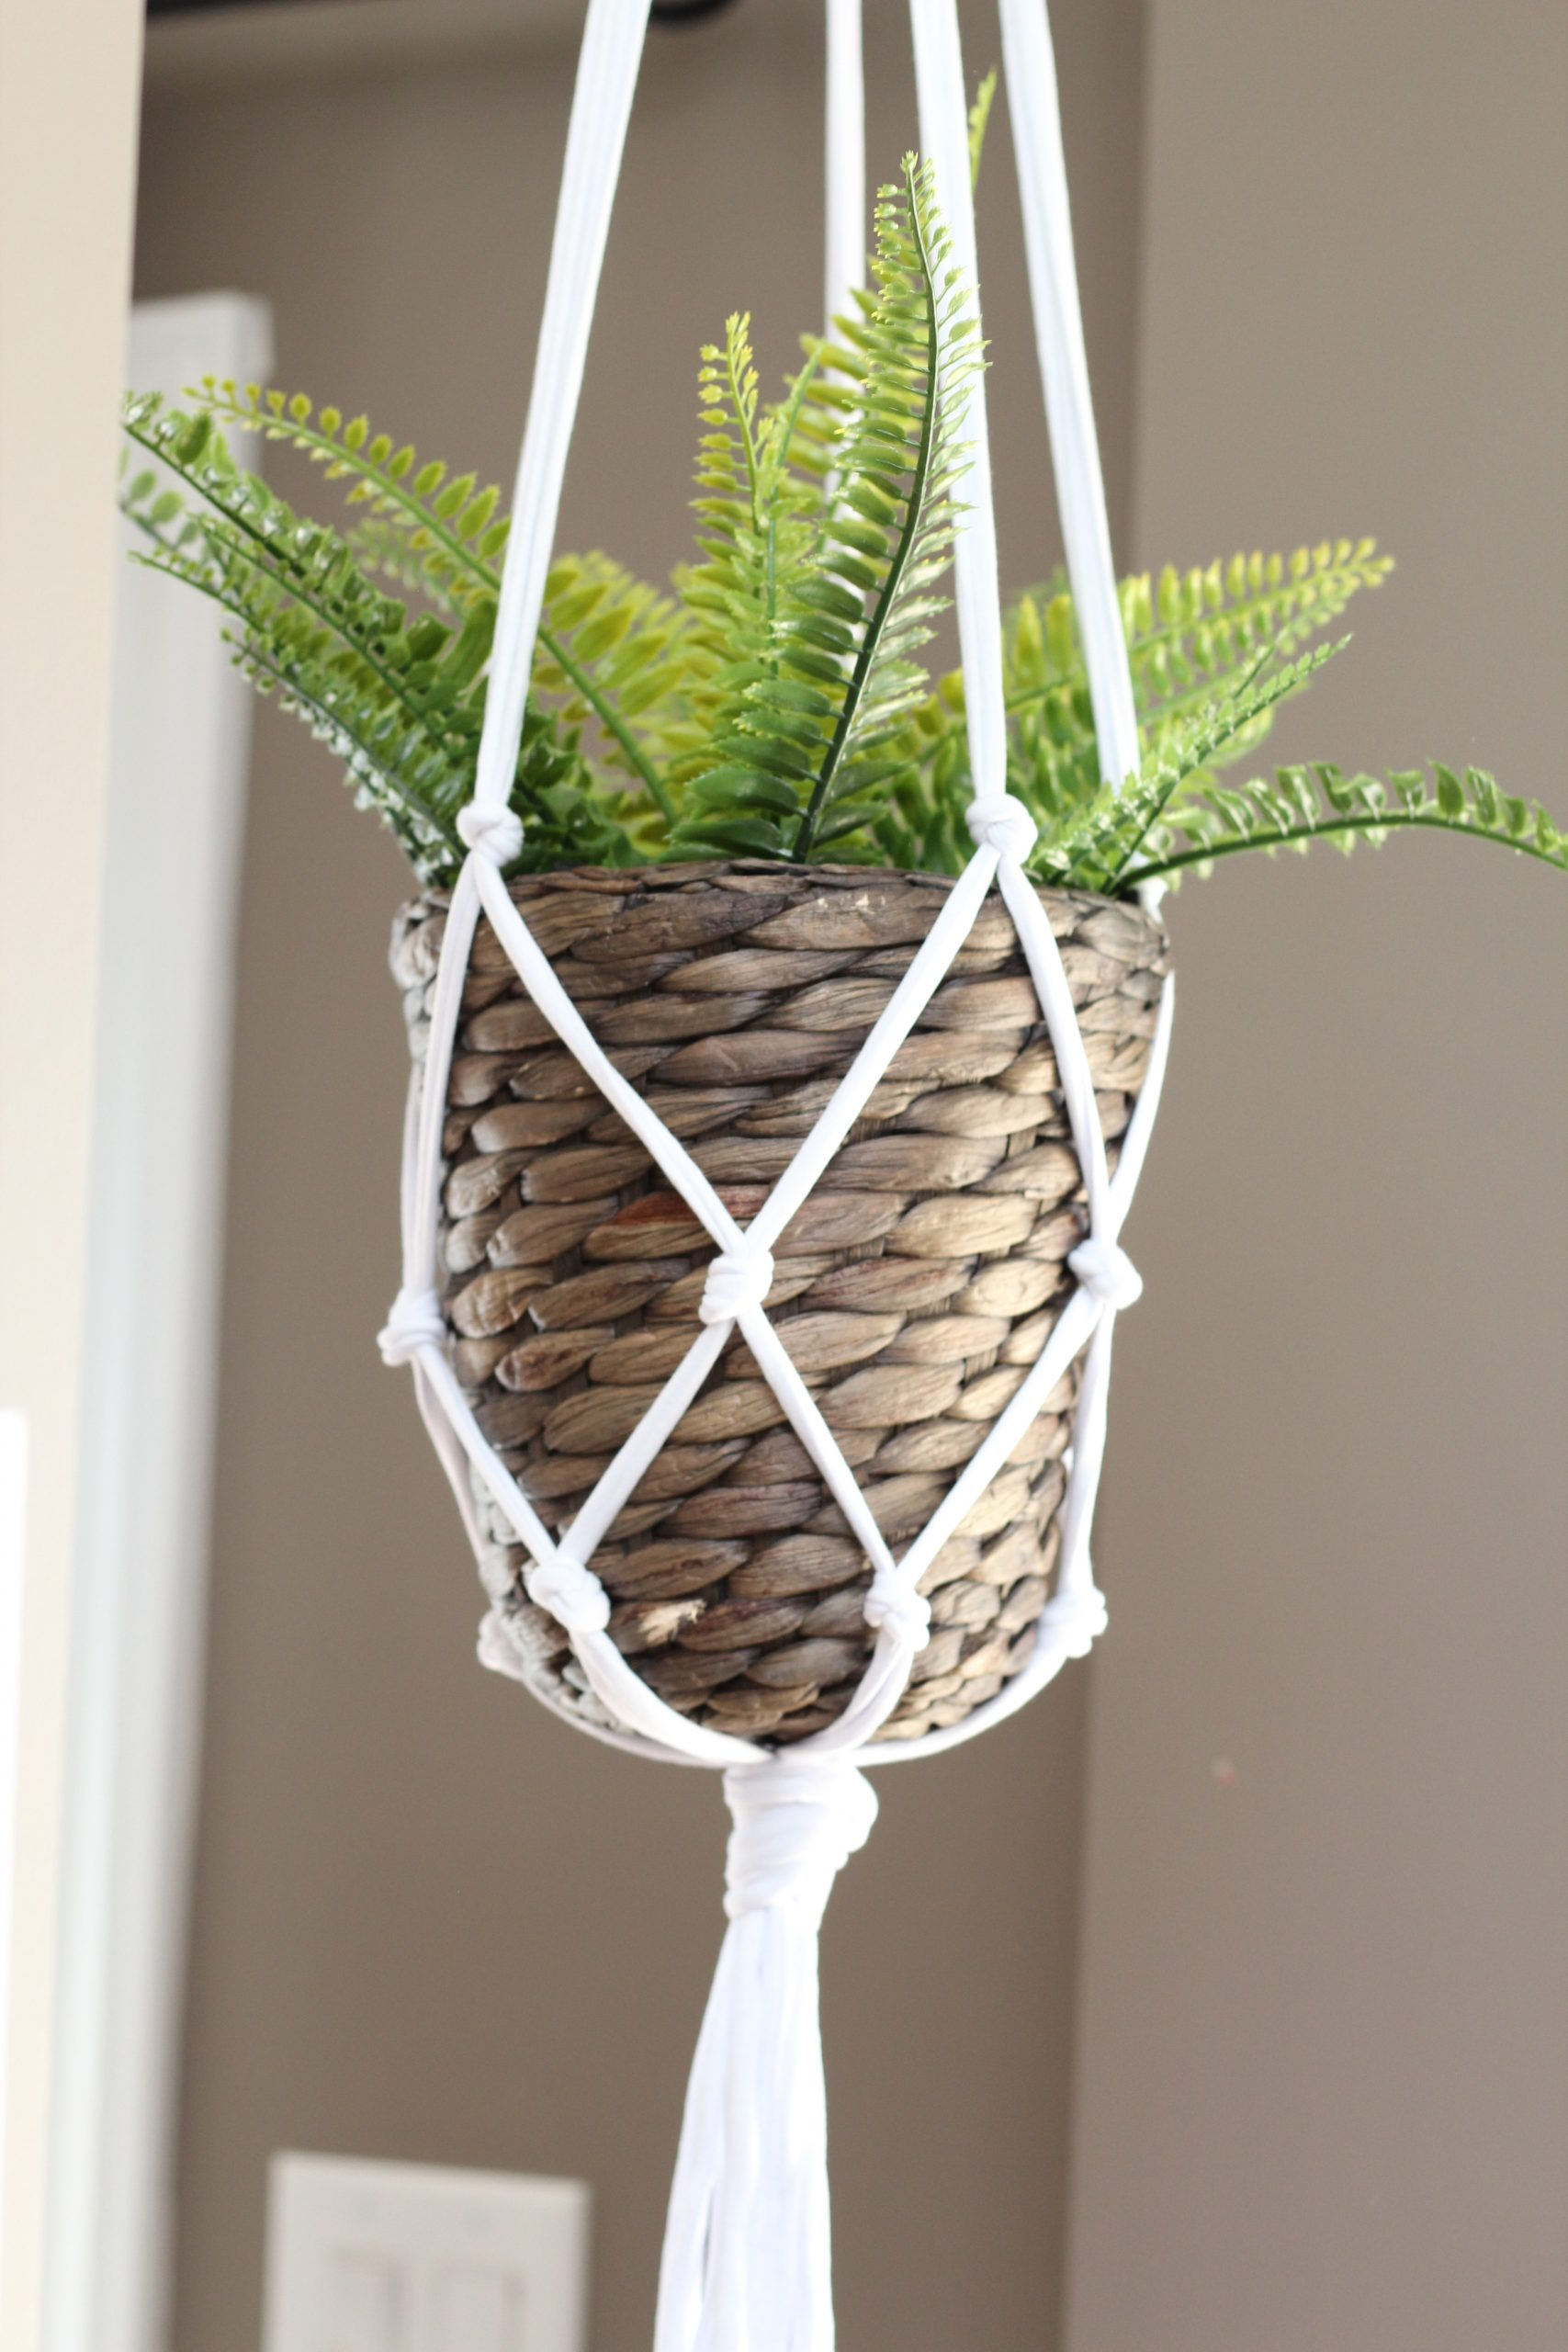 5 minute DIY macrame hanging planter